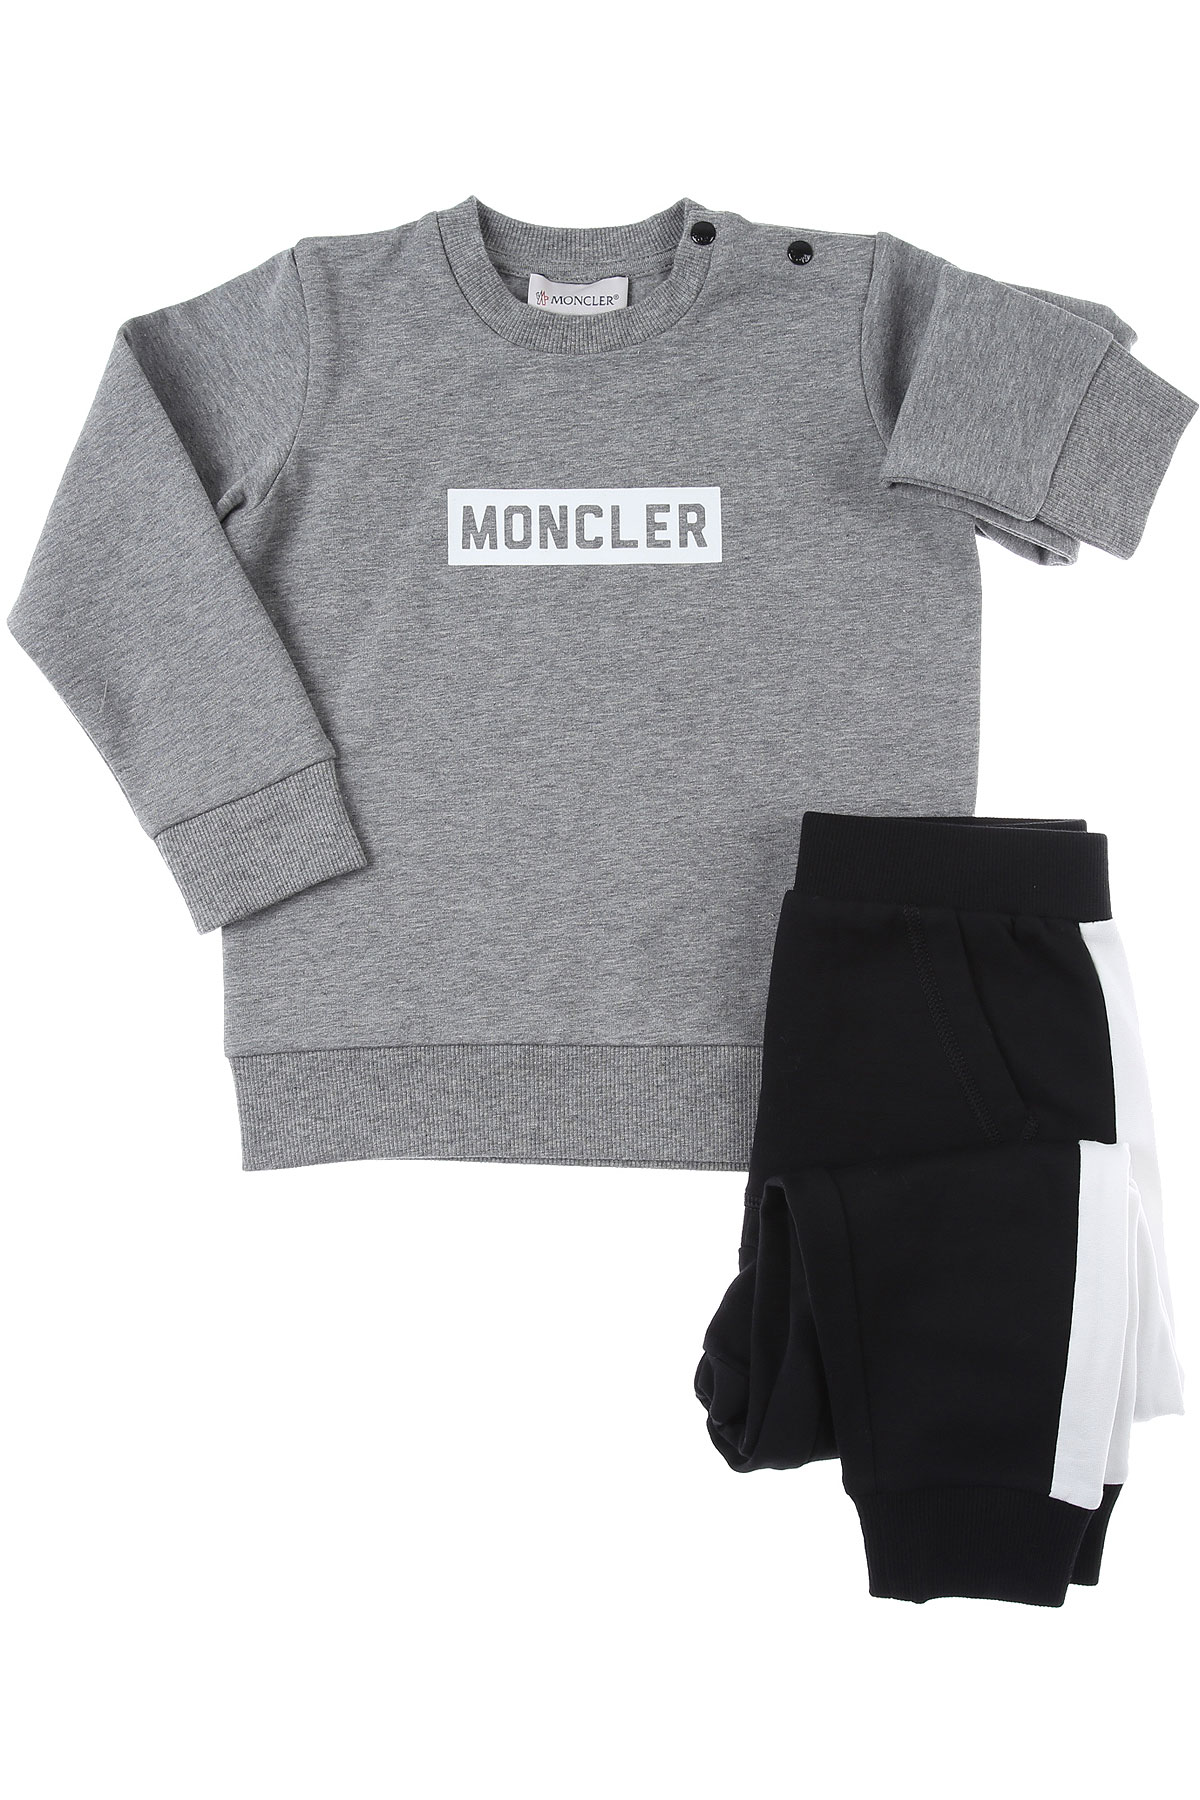 Moncler Baby Sets for Boys On Sale, Grey, Cotton, 2019, 2Y 3Y